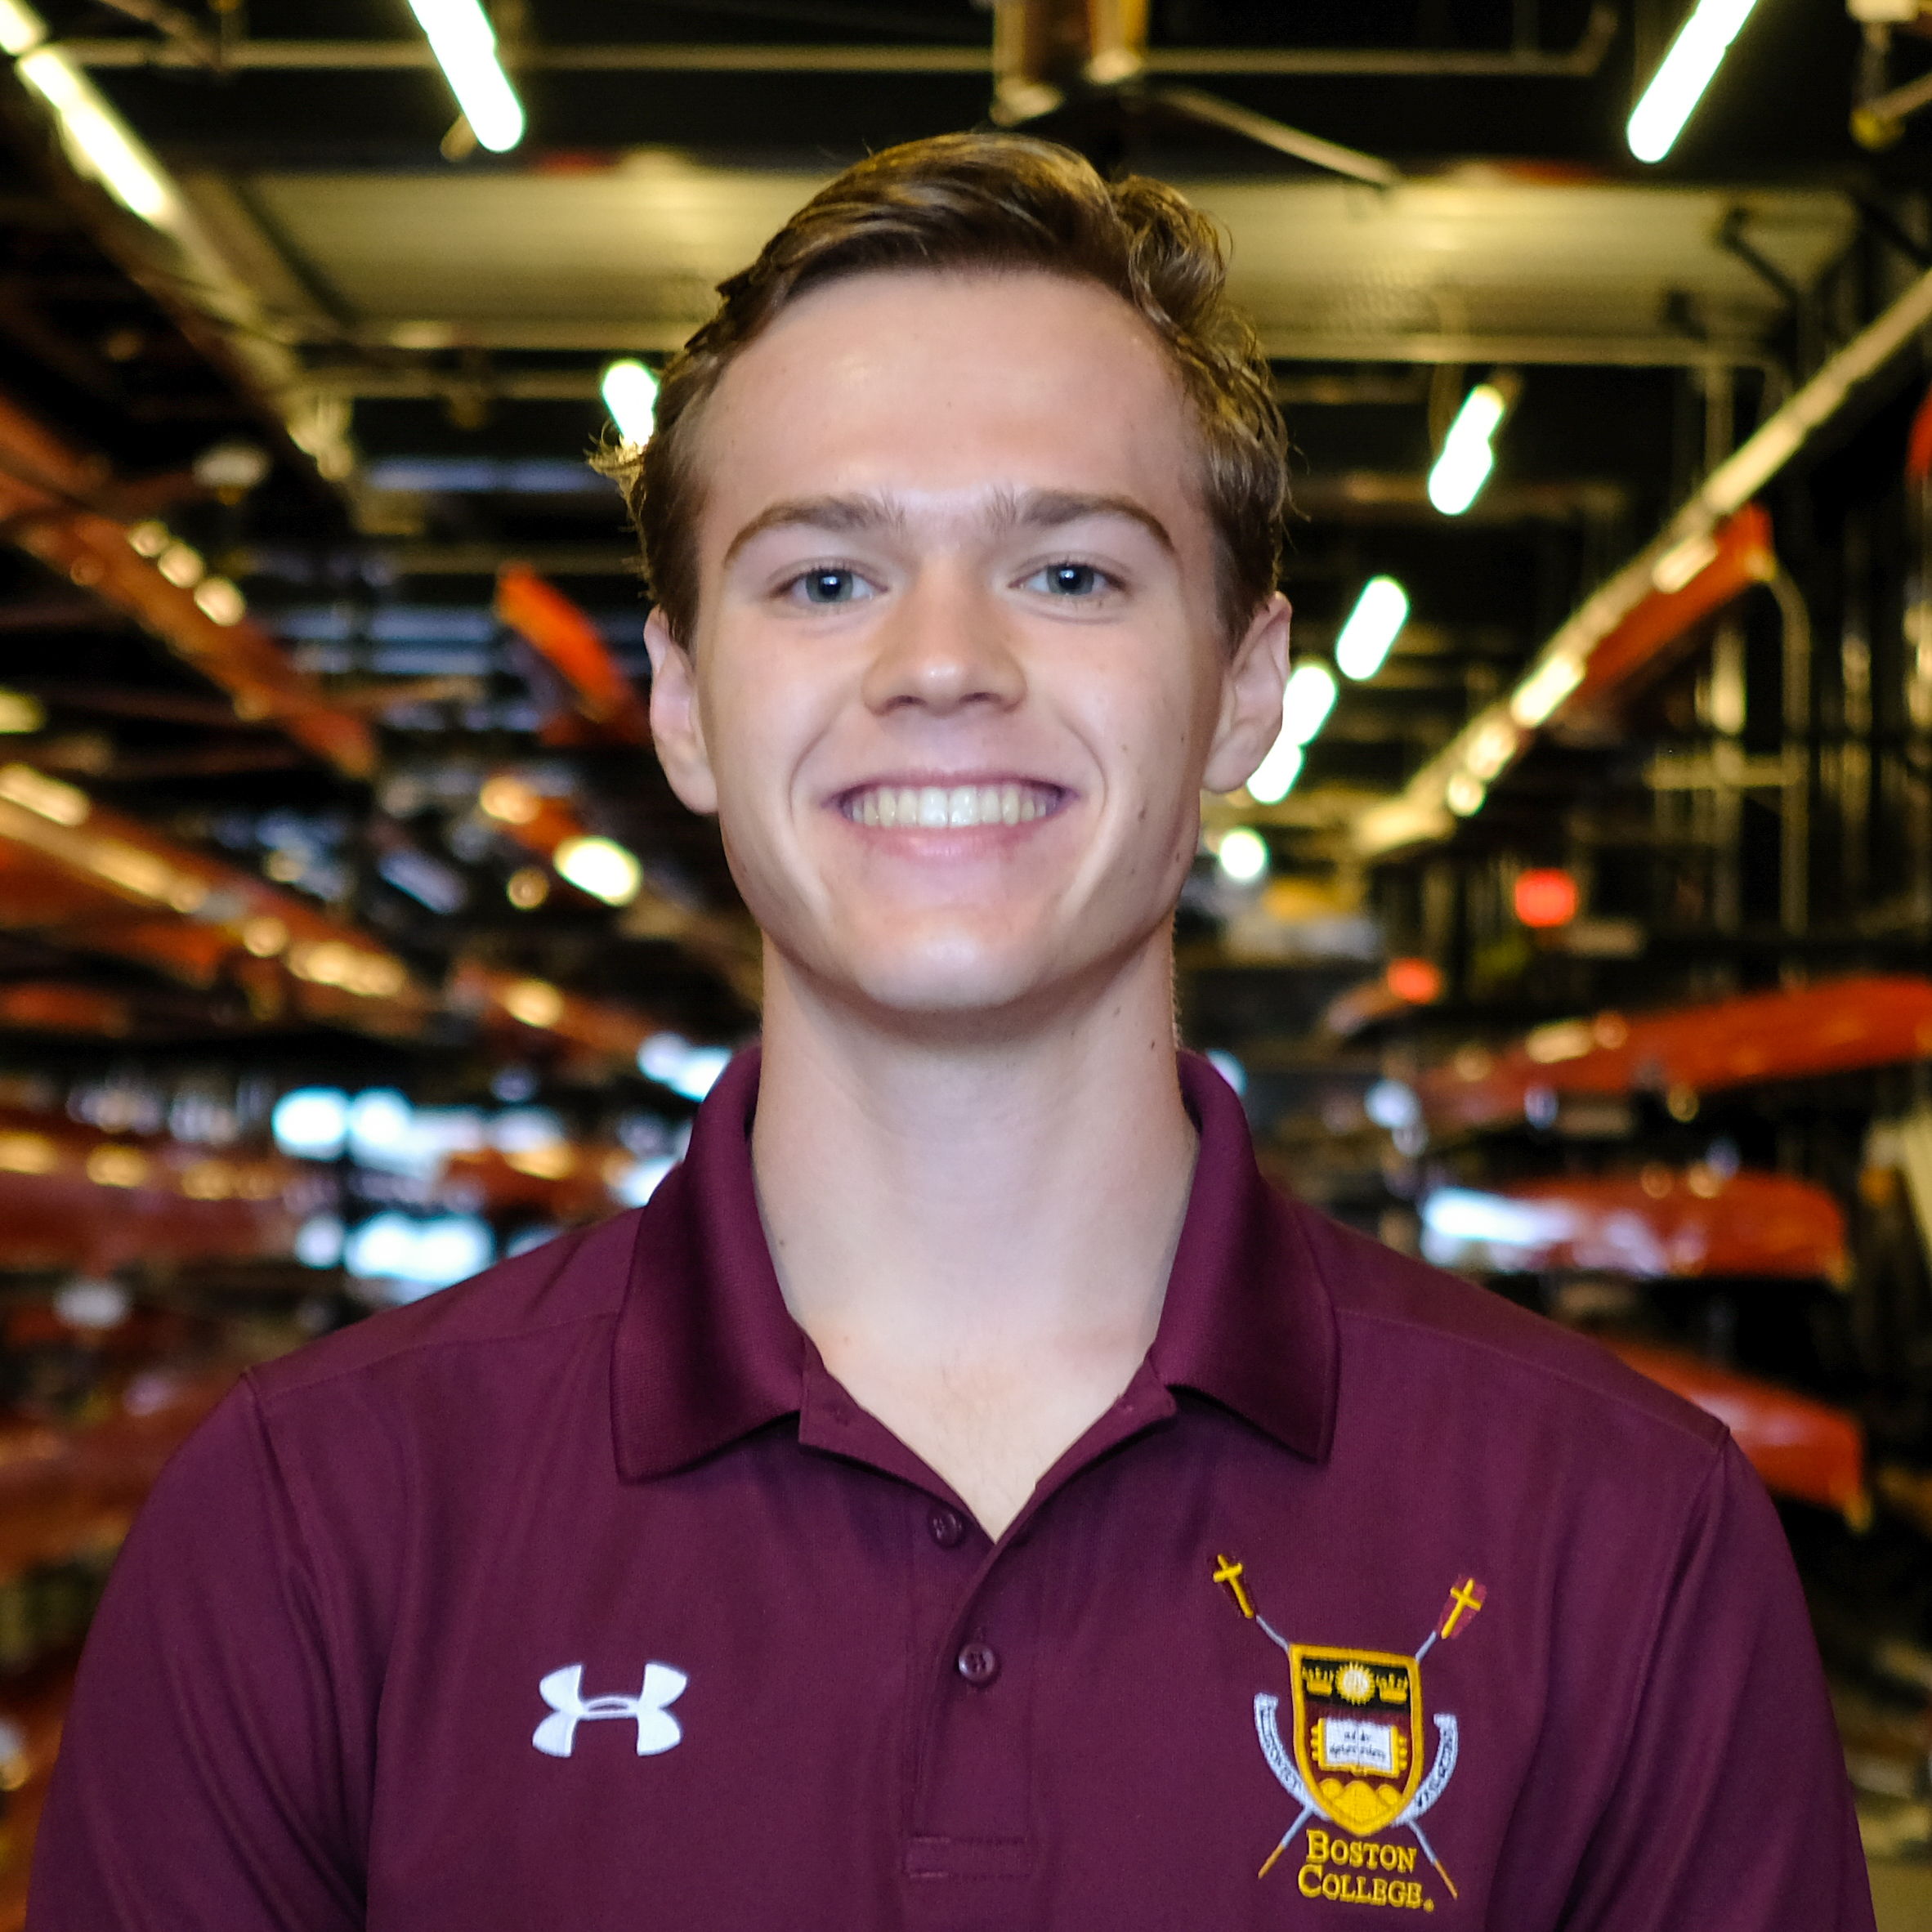 """Justin McMahon - Hometown: Buffalo, NYClass: 2021Height: 6'1"""" Weight: 180Bio: Justin was born and raised in Buffalo, the City of Good Neighbors and the pride of Western New York. Justin began his rowing career at Canisius High School where he won a NYS Championship in the Men's 4+. He also dabbles with hockey, cooking omelets, and Mamma Mia. He can draw a nice tree. At Boston College, Justin studies economics and volunteers with 4Boston. Quote: """"Hi, I'm Justin."""""""